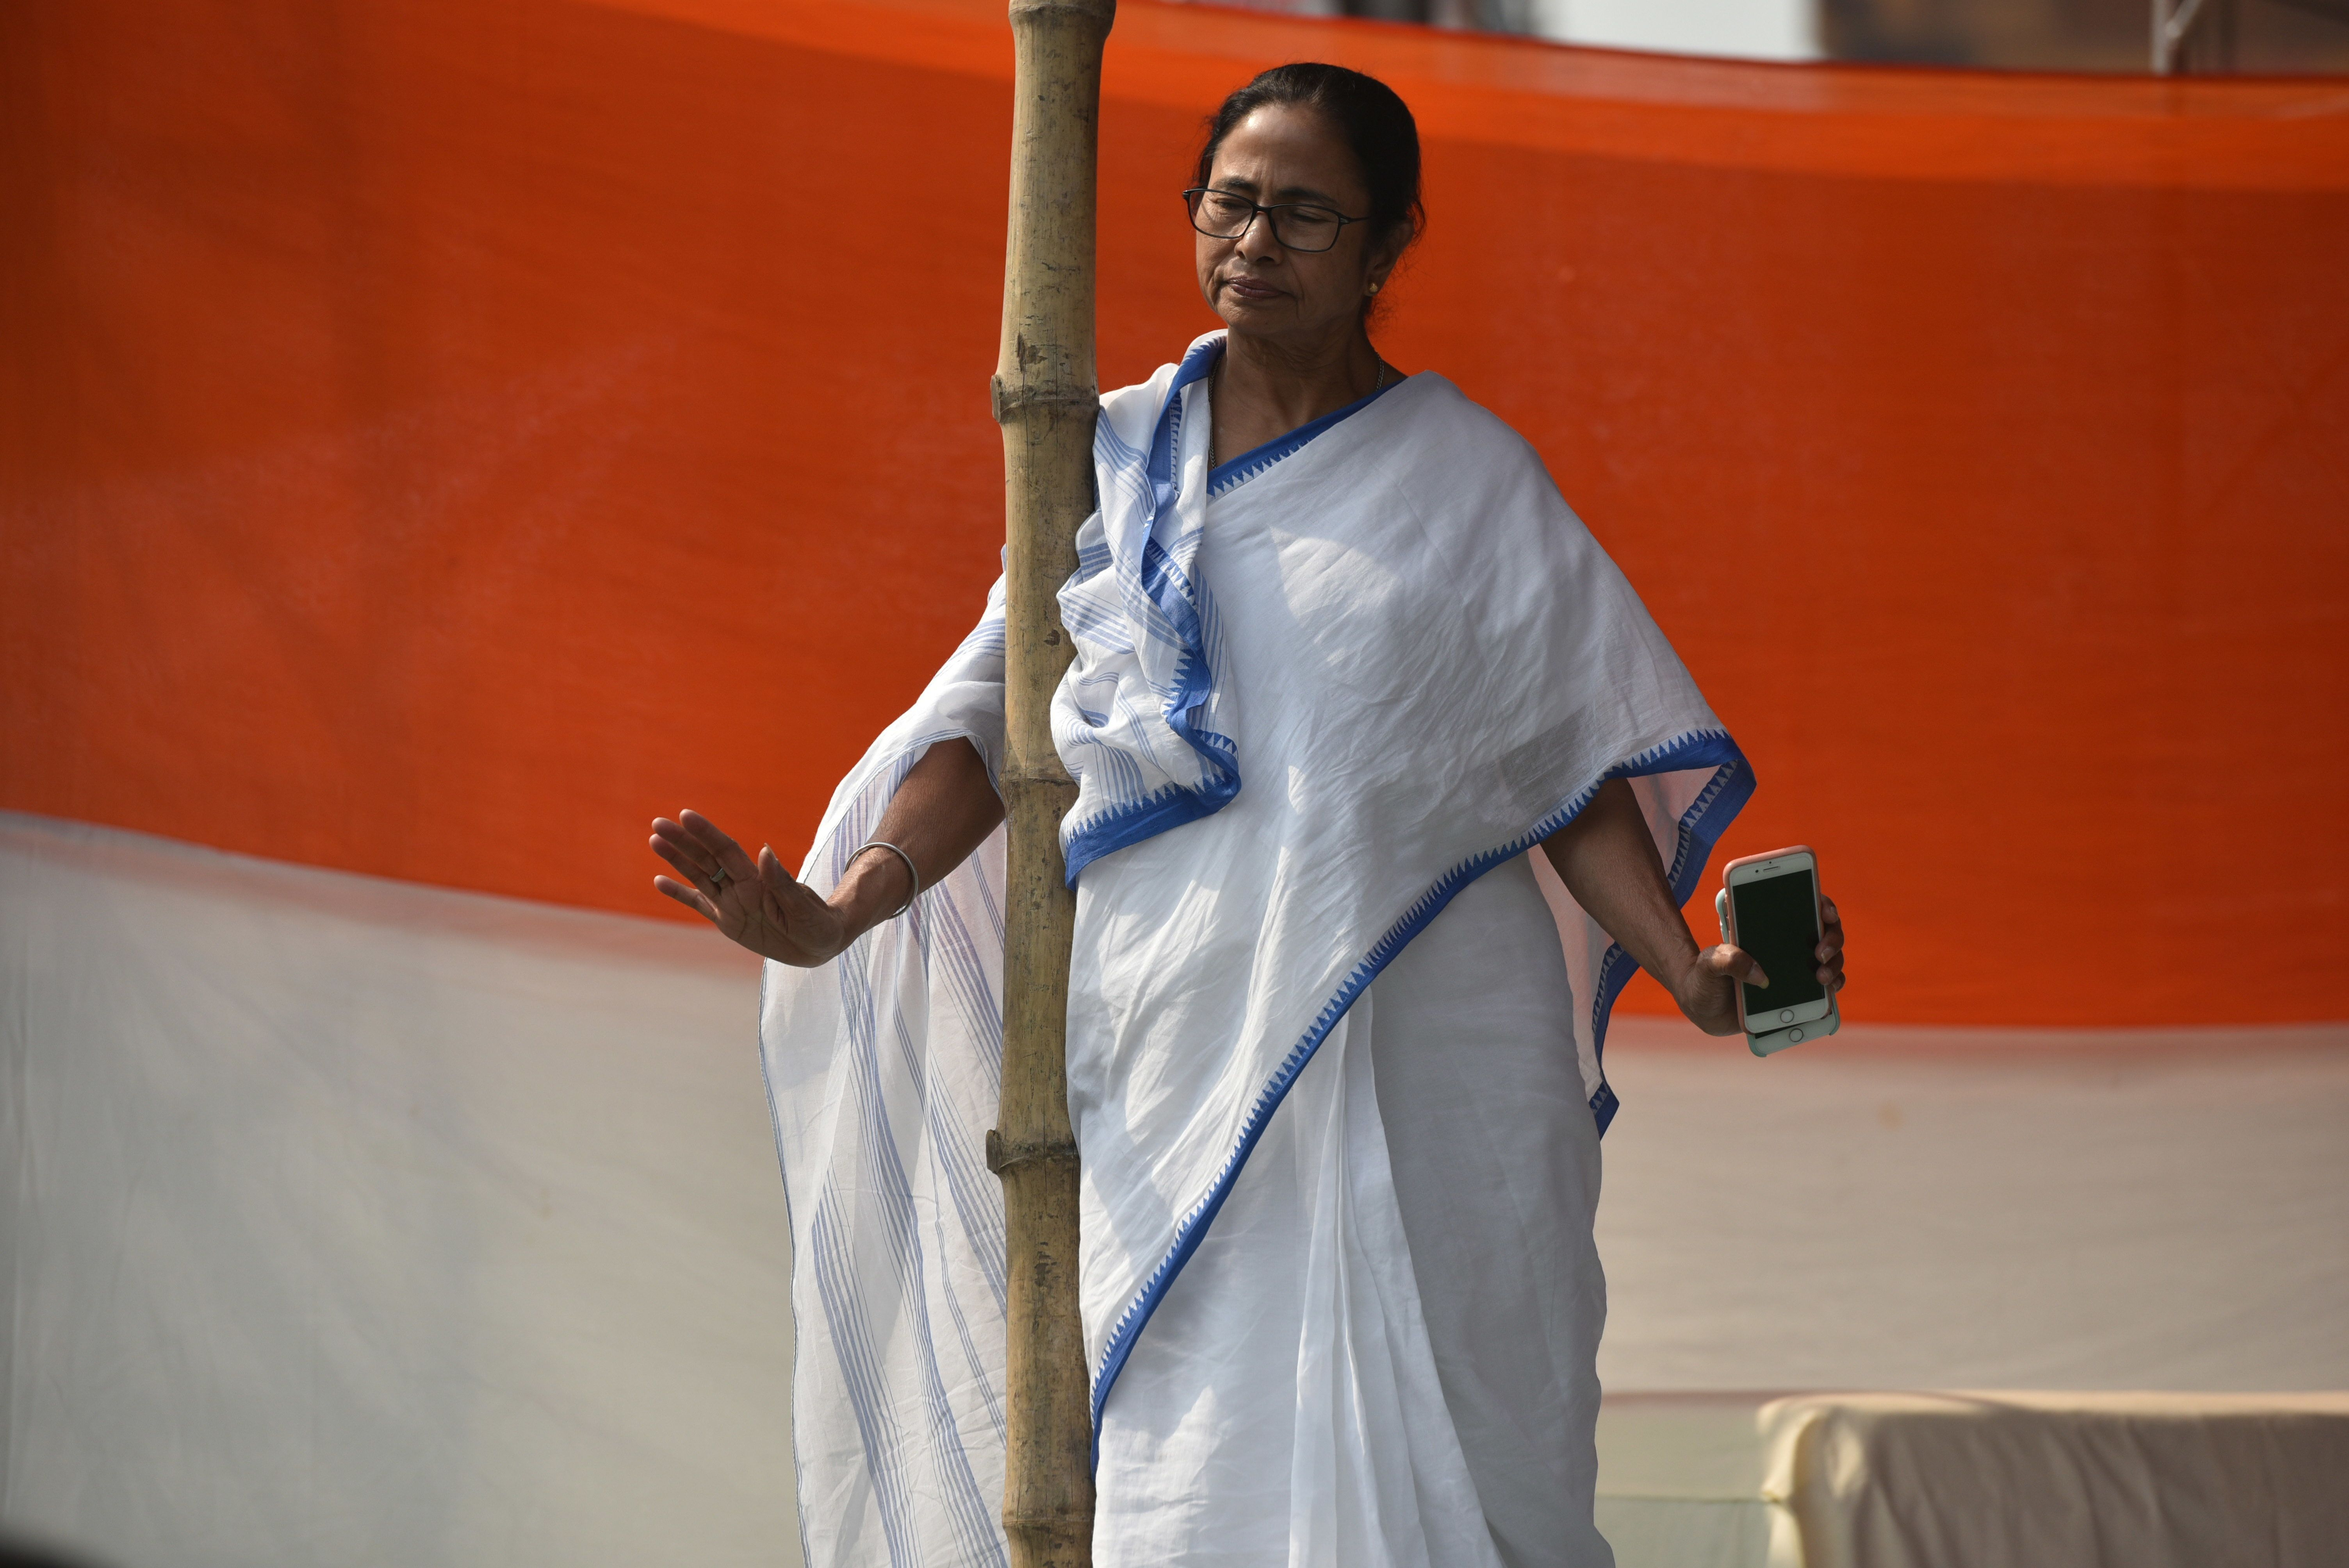 Mamata Banerjee Claims 'Moral Victory' After Supreme Court Order, BJP Calls It Blow To